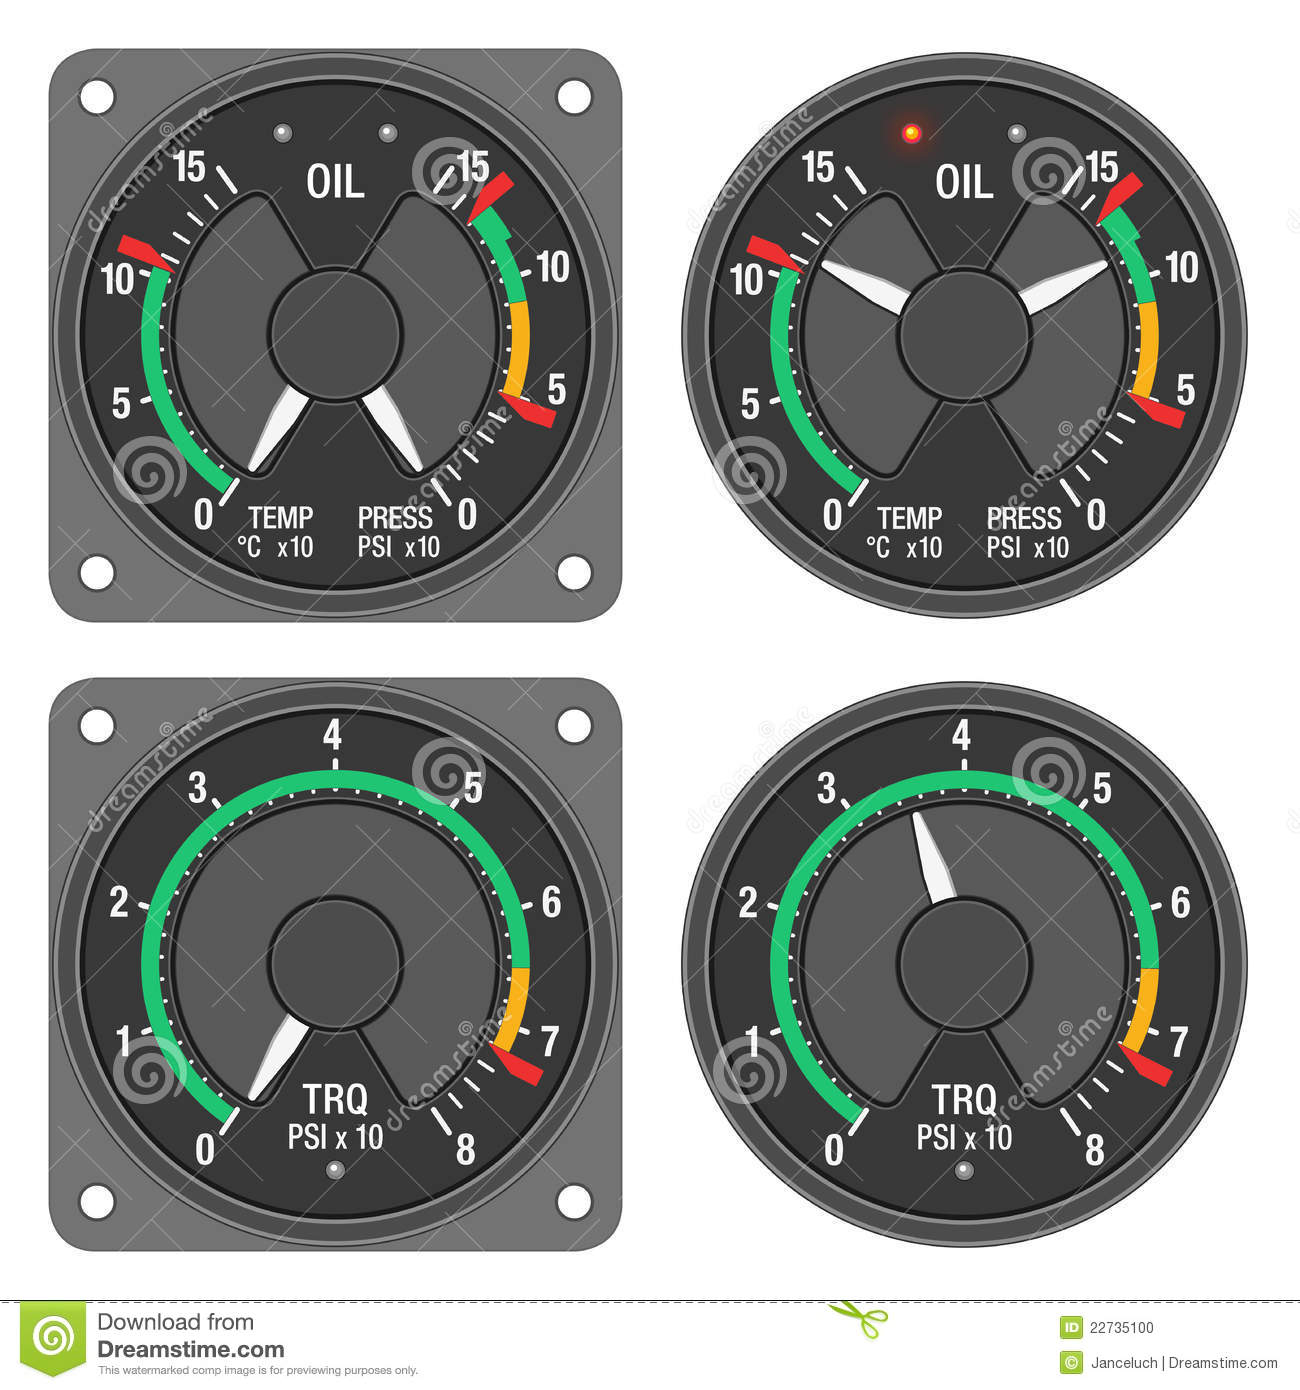 old plane illustration with Stock Photo Aircraft Indicators 1 480b Dashboard Set Image22735100 on Biplane top view further Stock Photography Dance Symbol Image26666522 additionally A380 Qatar Airways 68407145 together with Lessons2 furthermore 8 Tropic Islands Vectors 11392.